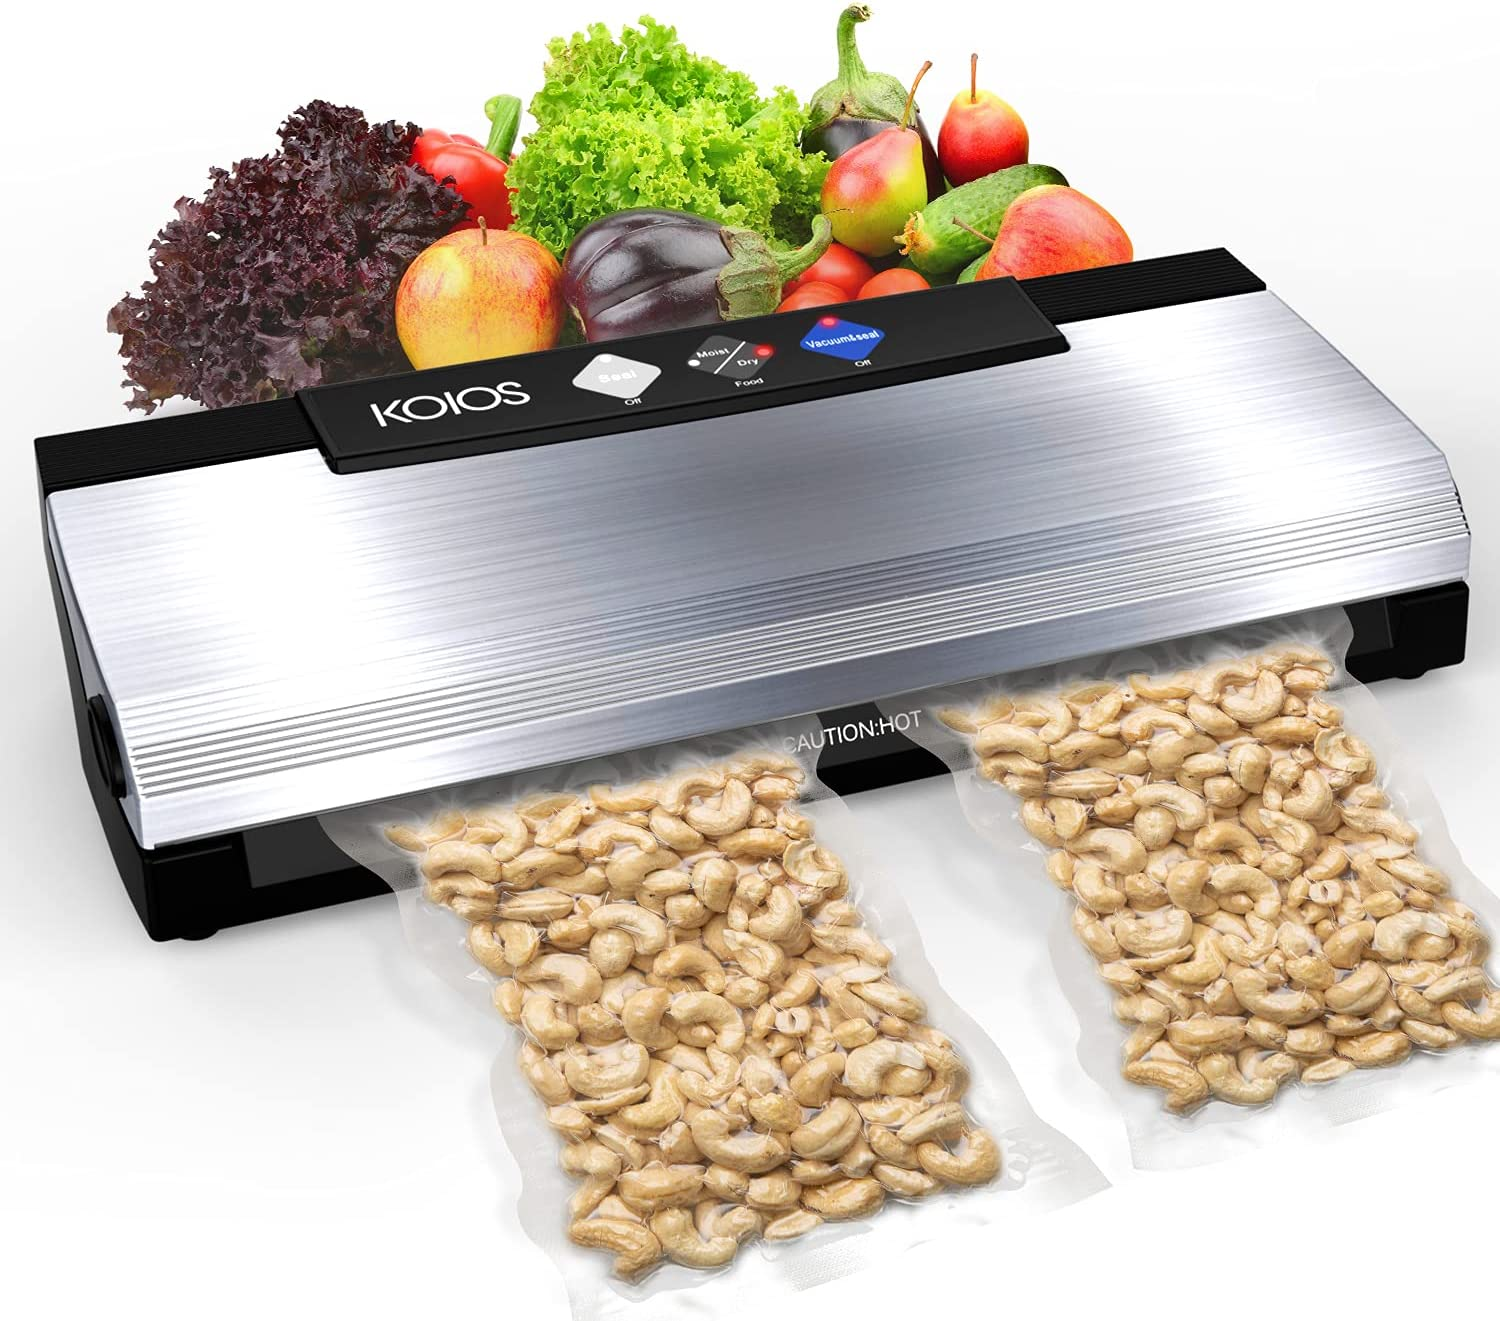 KOIOS Vacuum Sealer Machine, 85kPa Automatic Food Sealer for Food Savers with Starter Kits, Dry & Moist Food Modes, Easy to Clean, Compact Design and Built-in Cutter